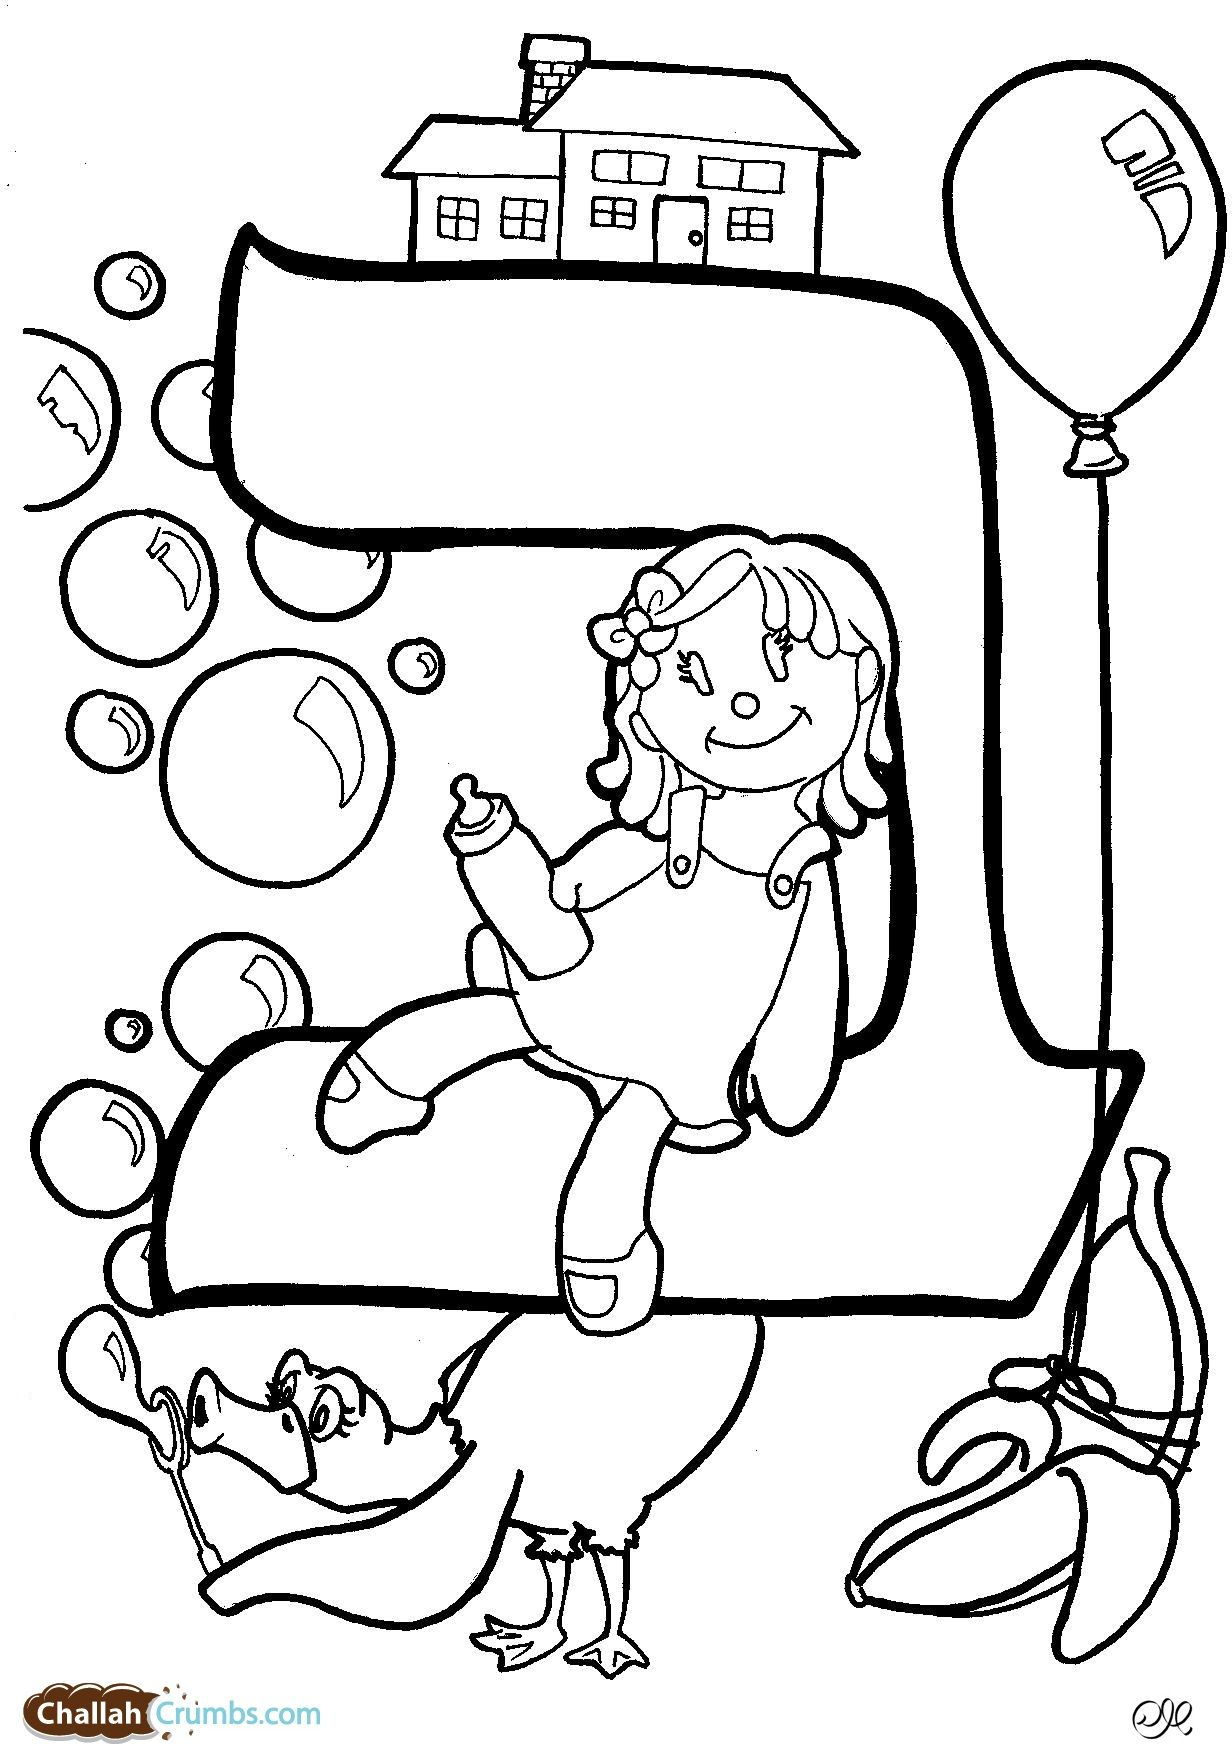 This is great website challahcrumbs coloring pages for Torah coloring pages